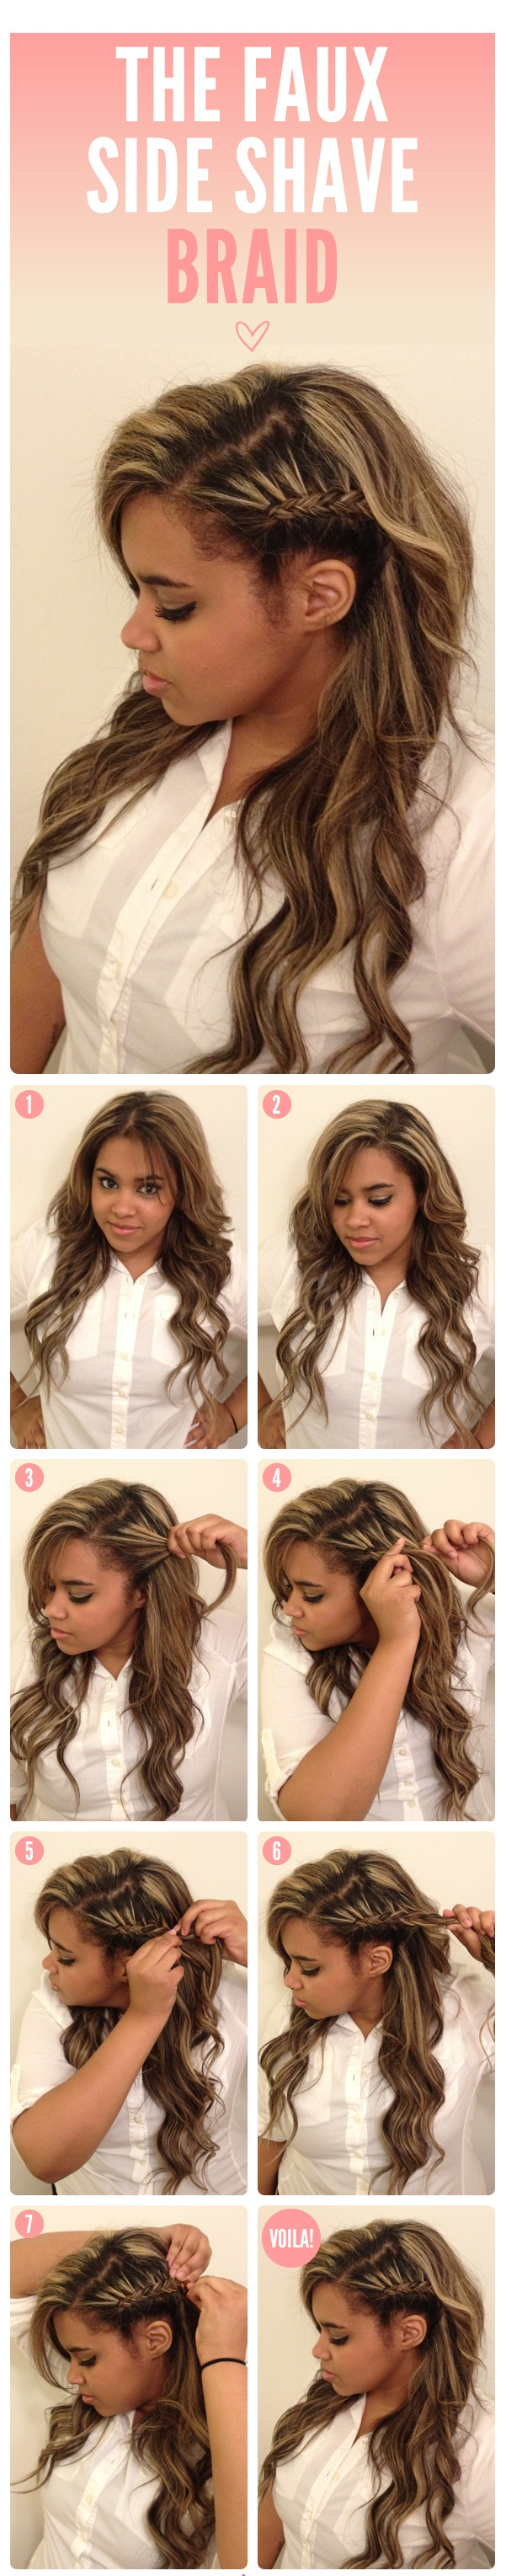 Pleasant 25 Diy Braided Hairstyles You Really Have To Pin Short Hairstyles For Black Women Fulllsitofus